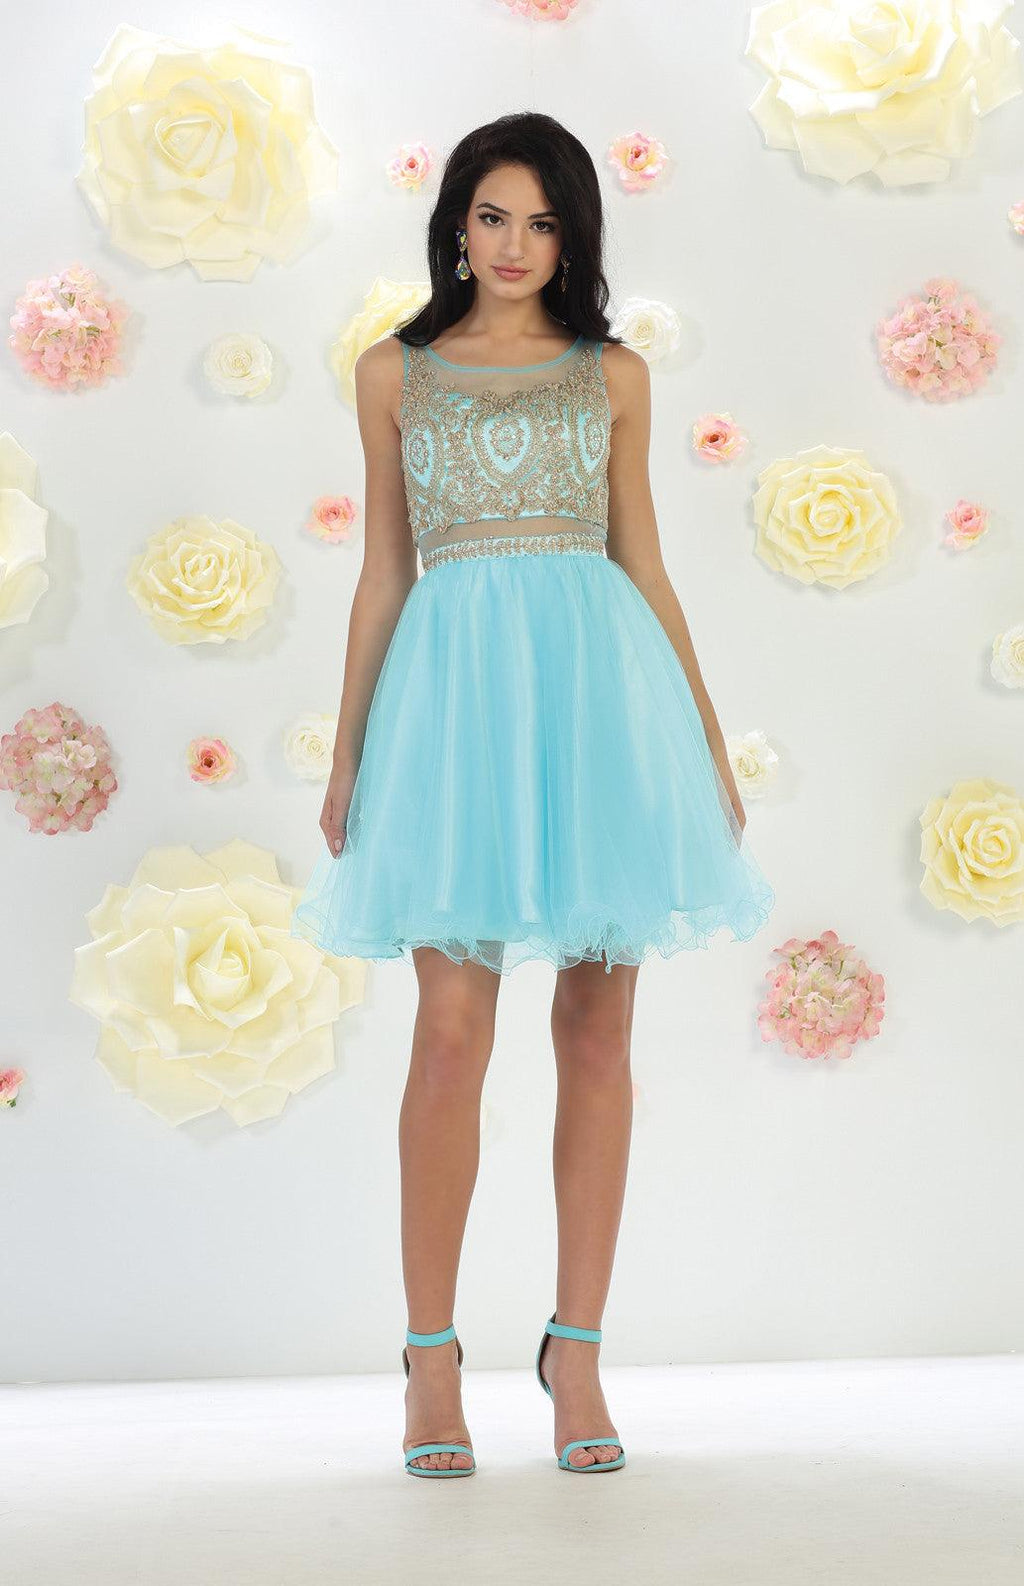 Short Prom Dress Homecoming - The Dress Outlet Aqua May Queen